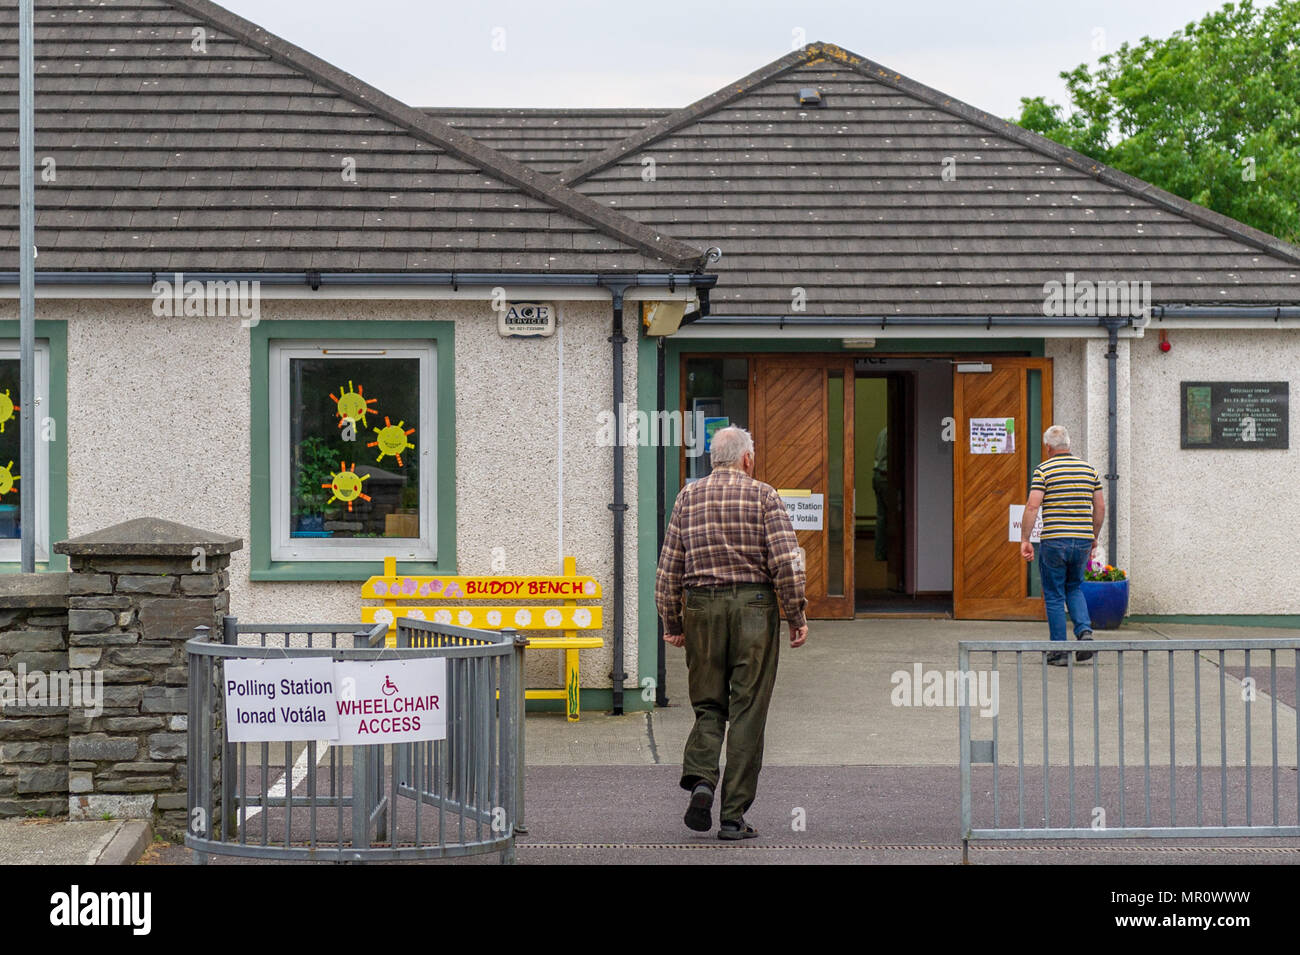 Schull Ireland 25th May 2018 Today Is Referendum Day On The Eighth Amendment Of The Constitution Act 1983 Which Bans Mothers From Having Abortions The Vote Today Is Whether To Retain Or